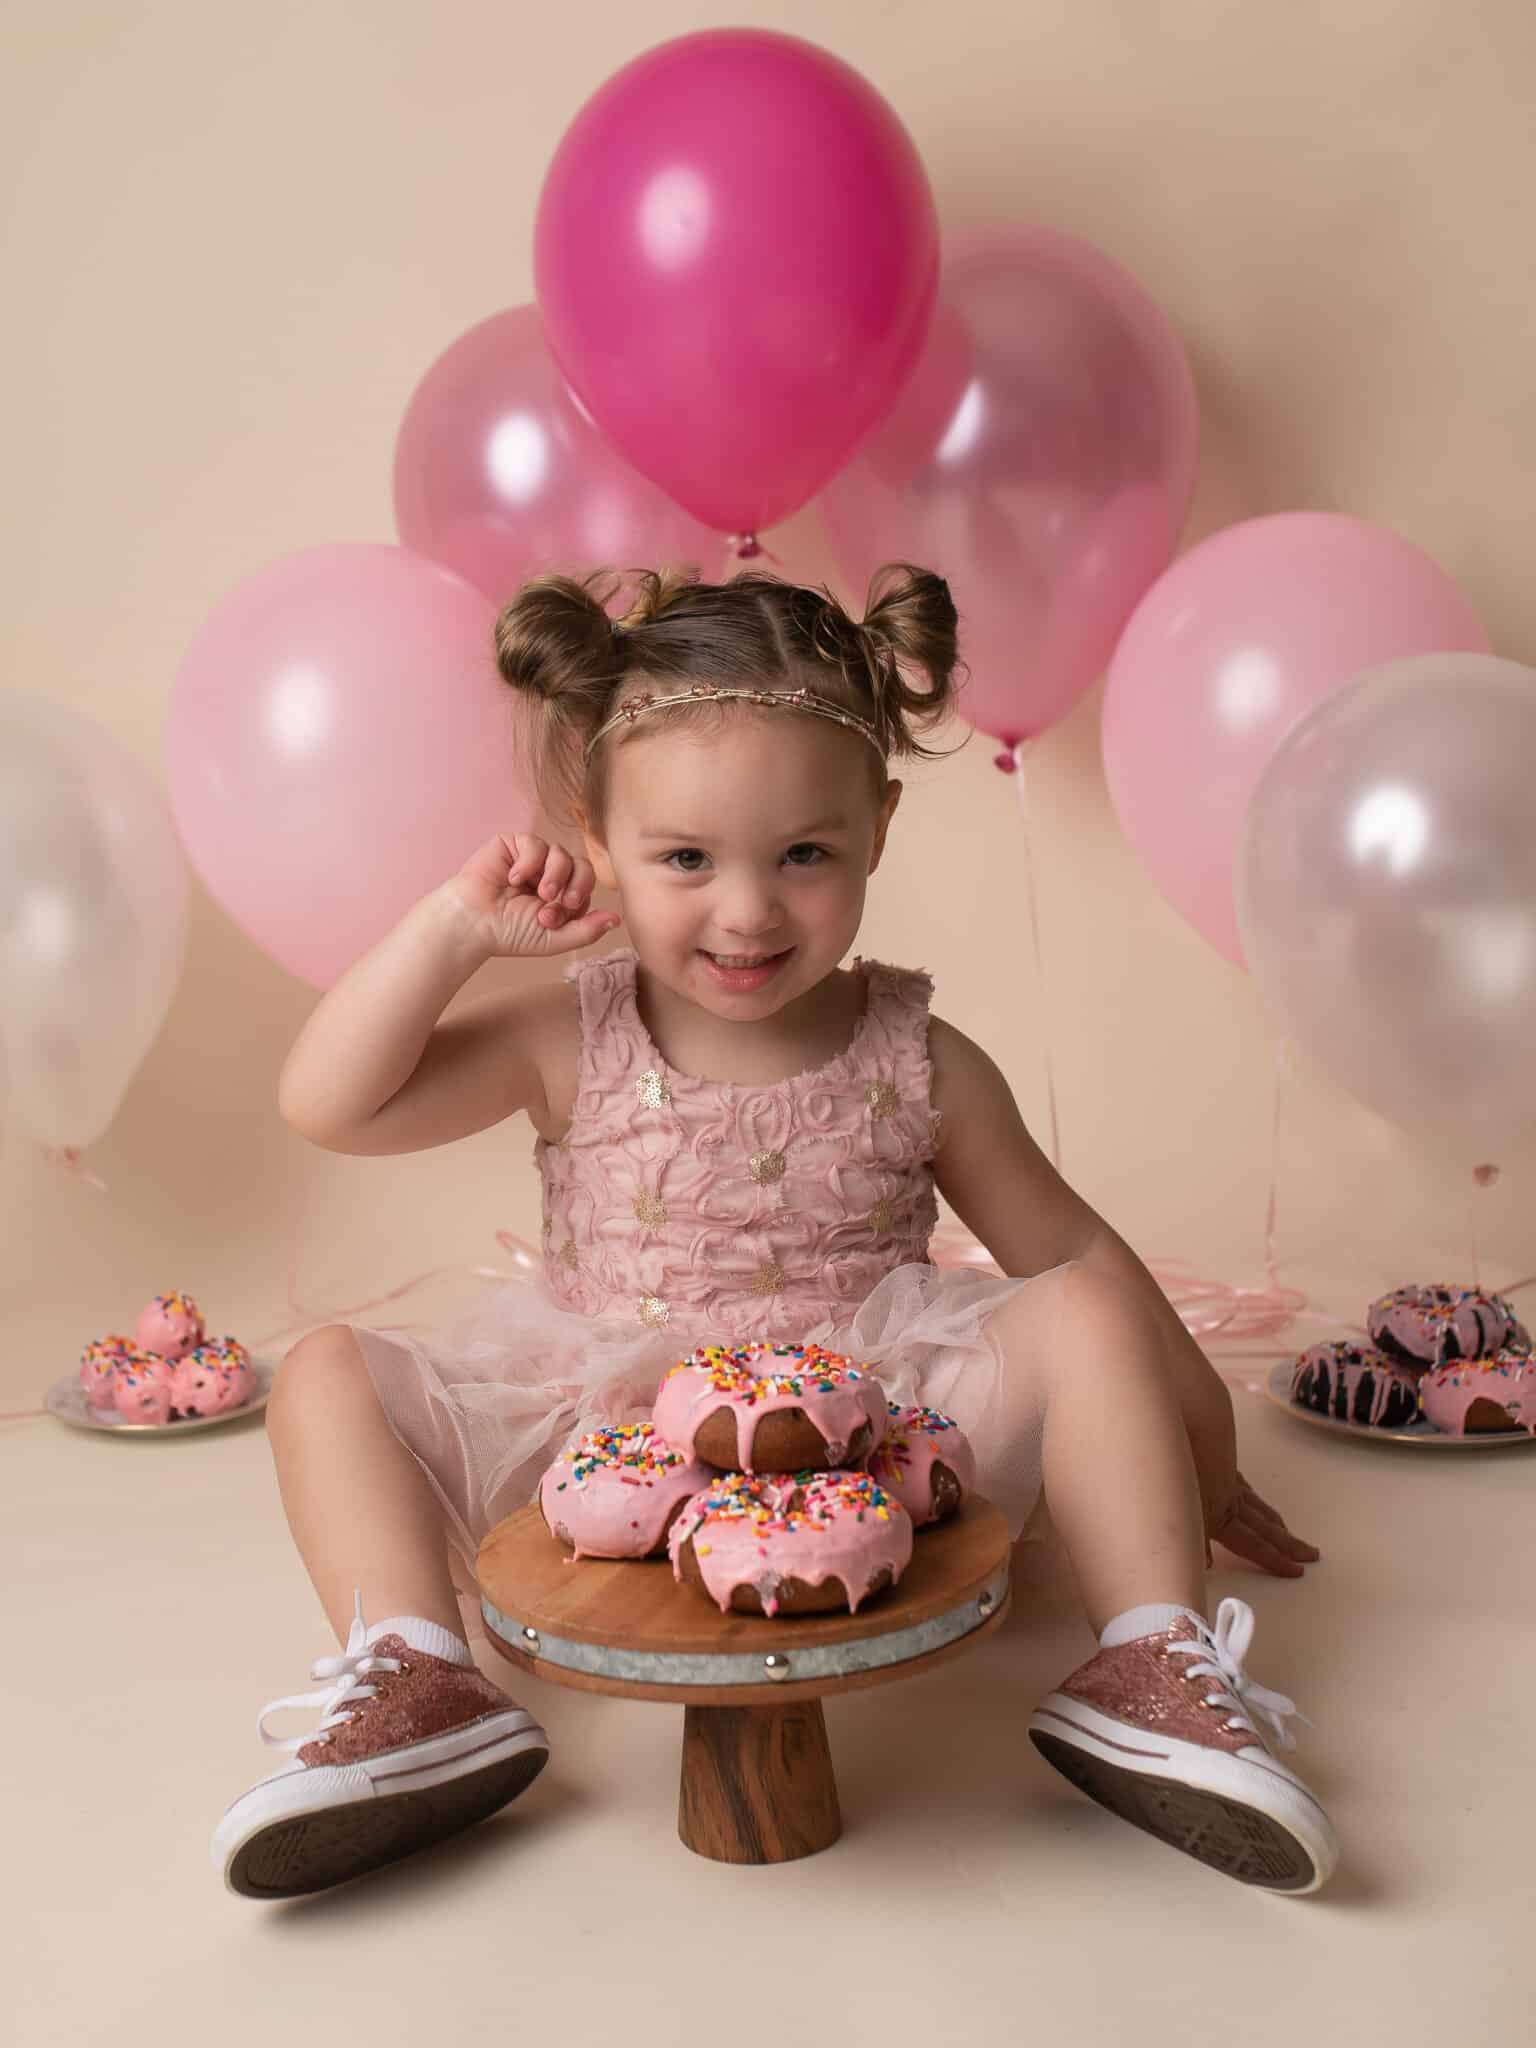 Baby Girl in Pink Dress smiling at the camera with a plate of donuts in front of her.